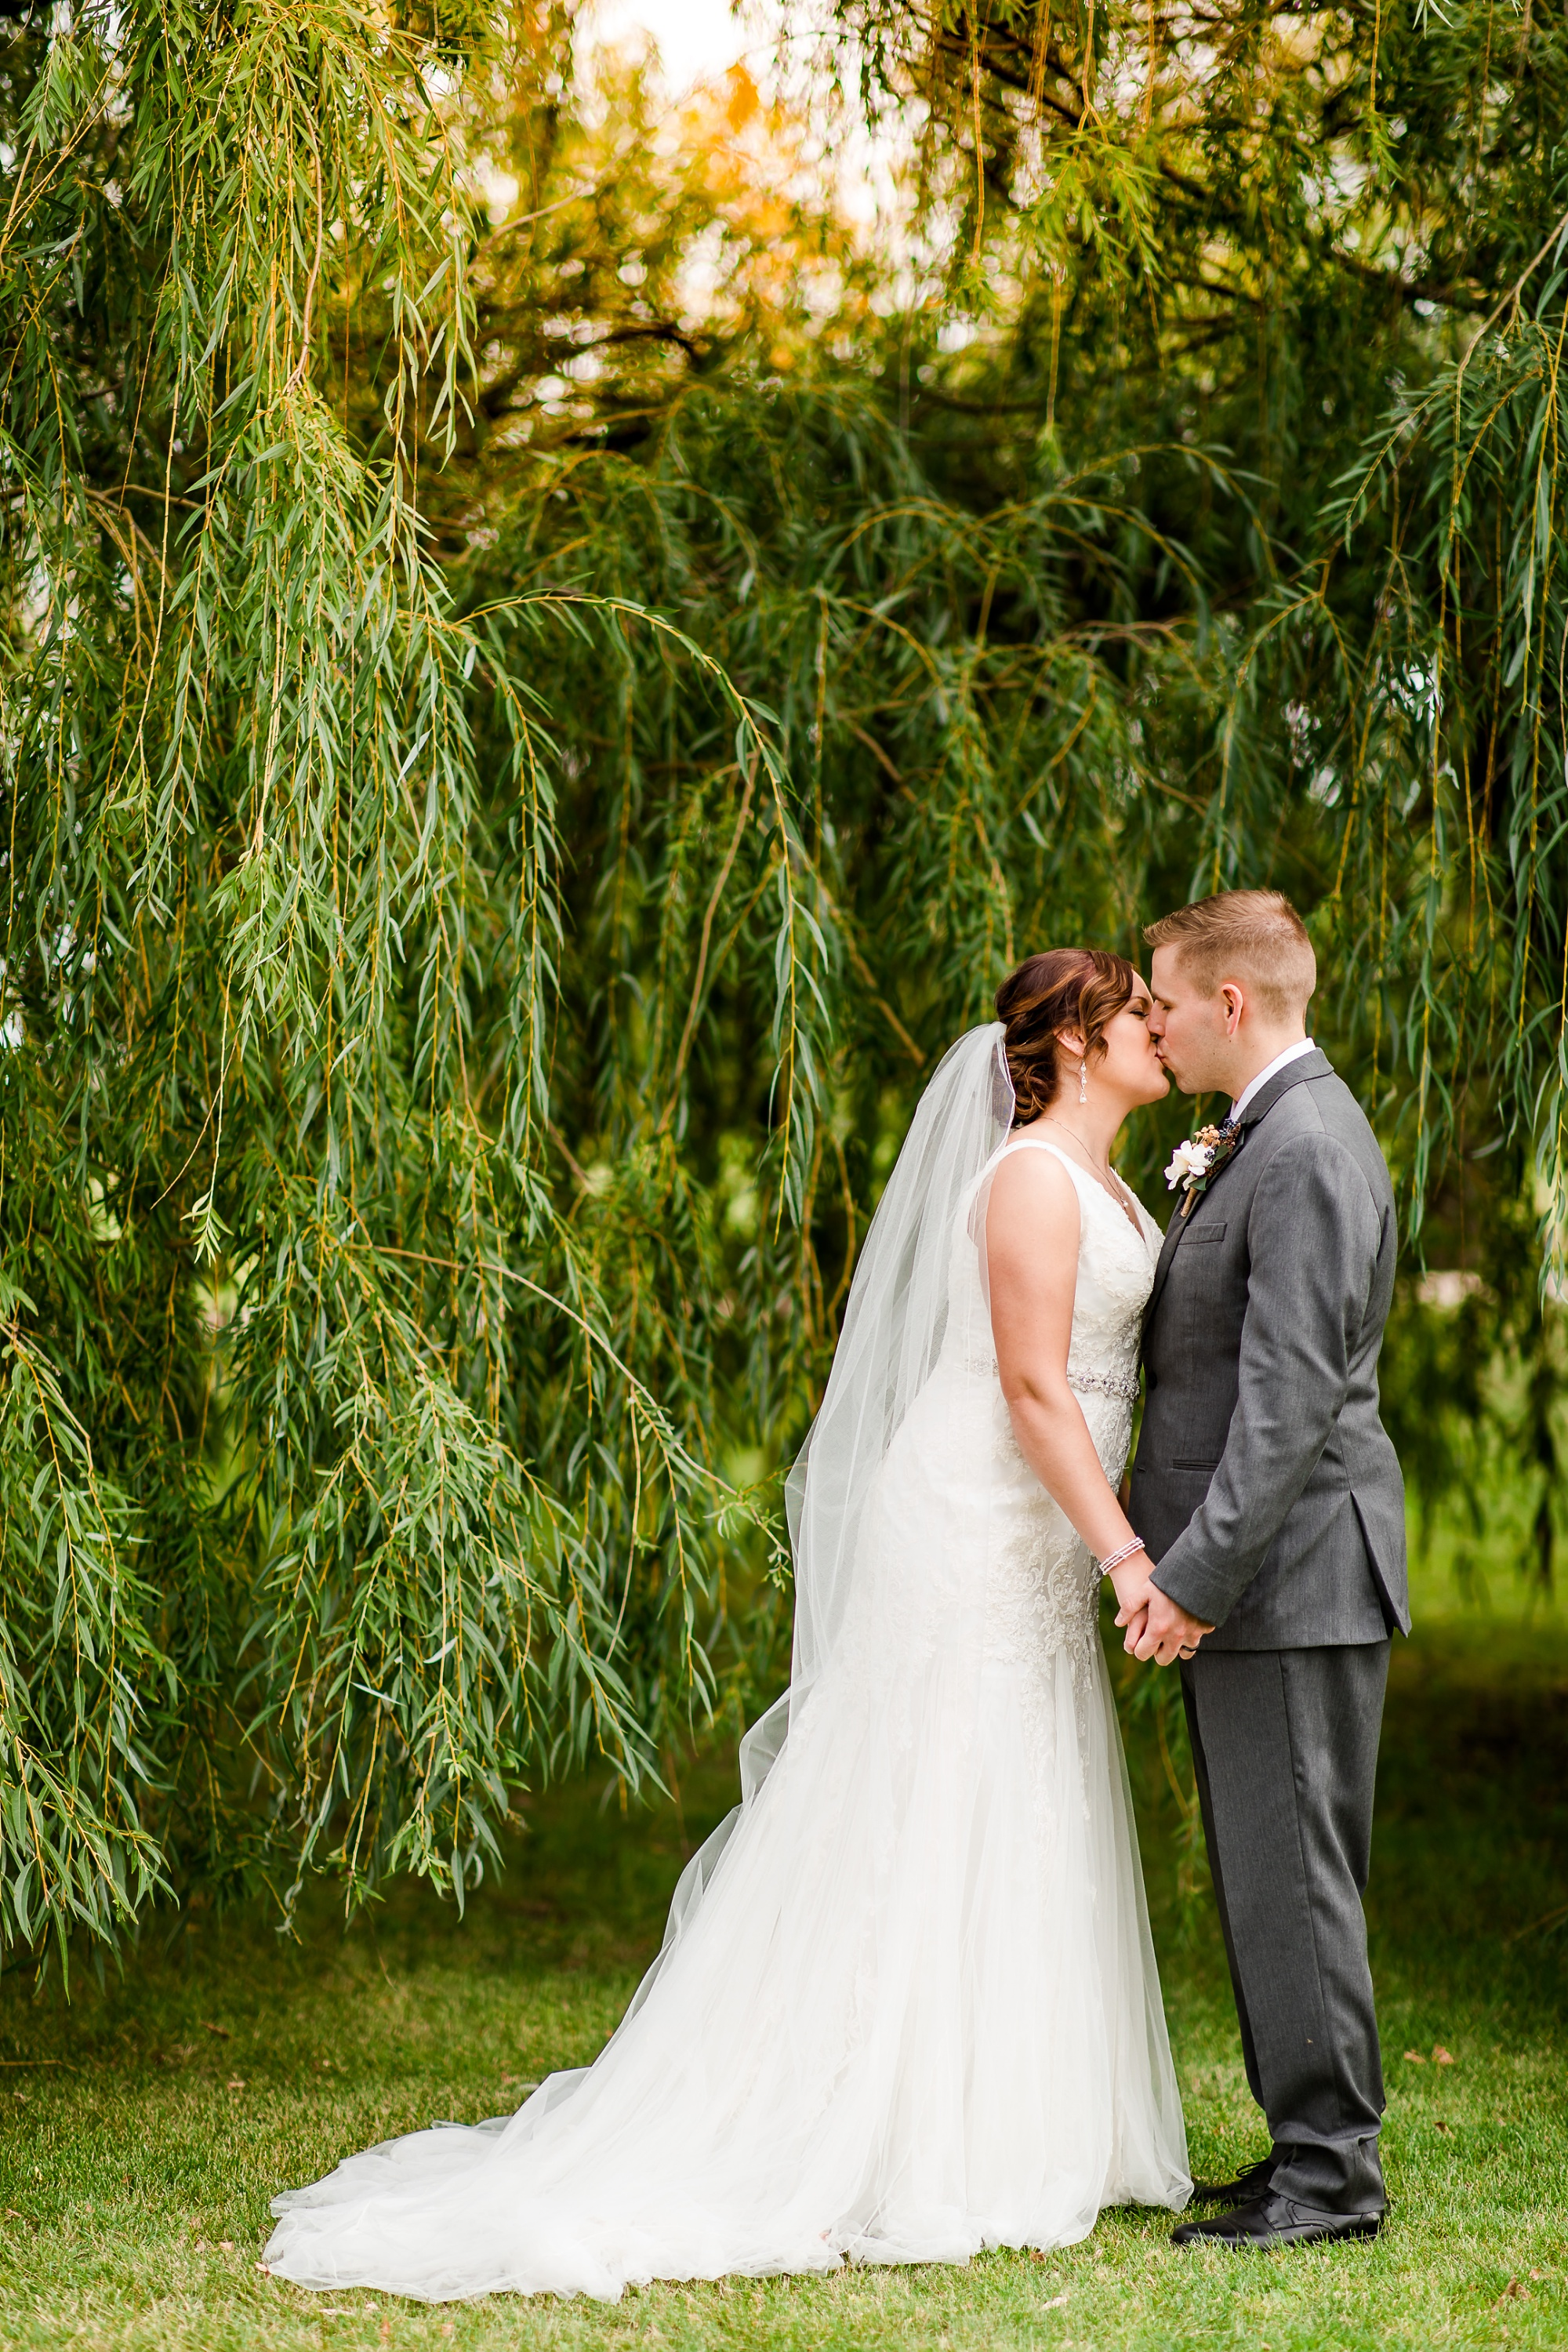 Amber Langerud Photography_Moohread, Outdoor, Barn Wedding at A Friends House_7061-2.jpg